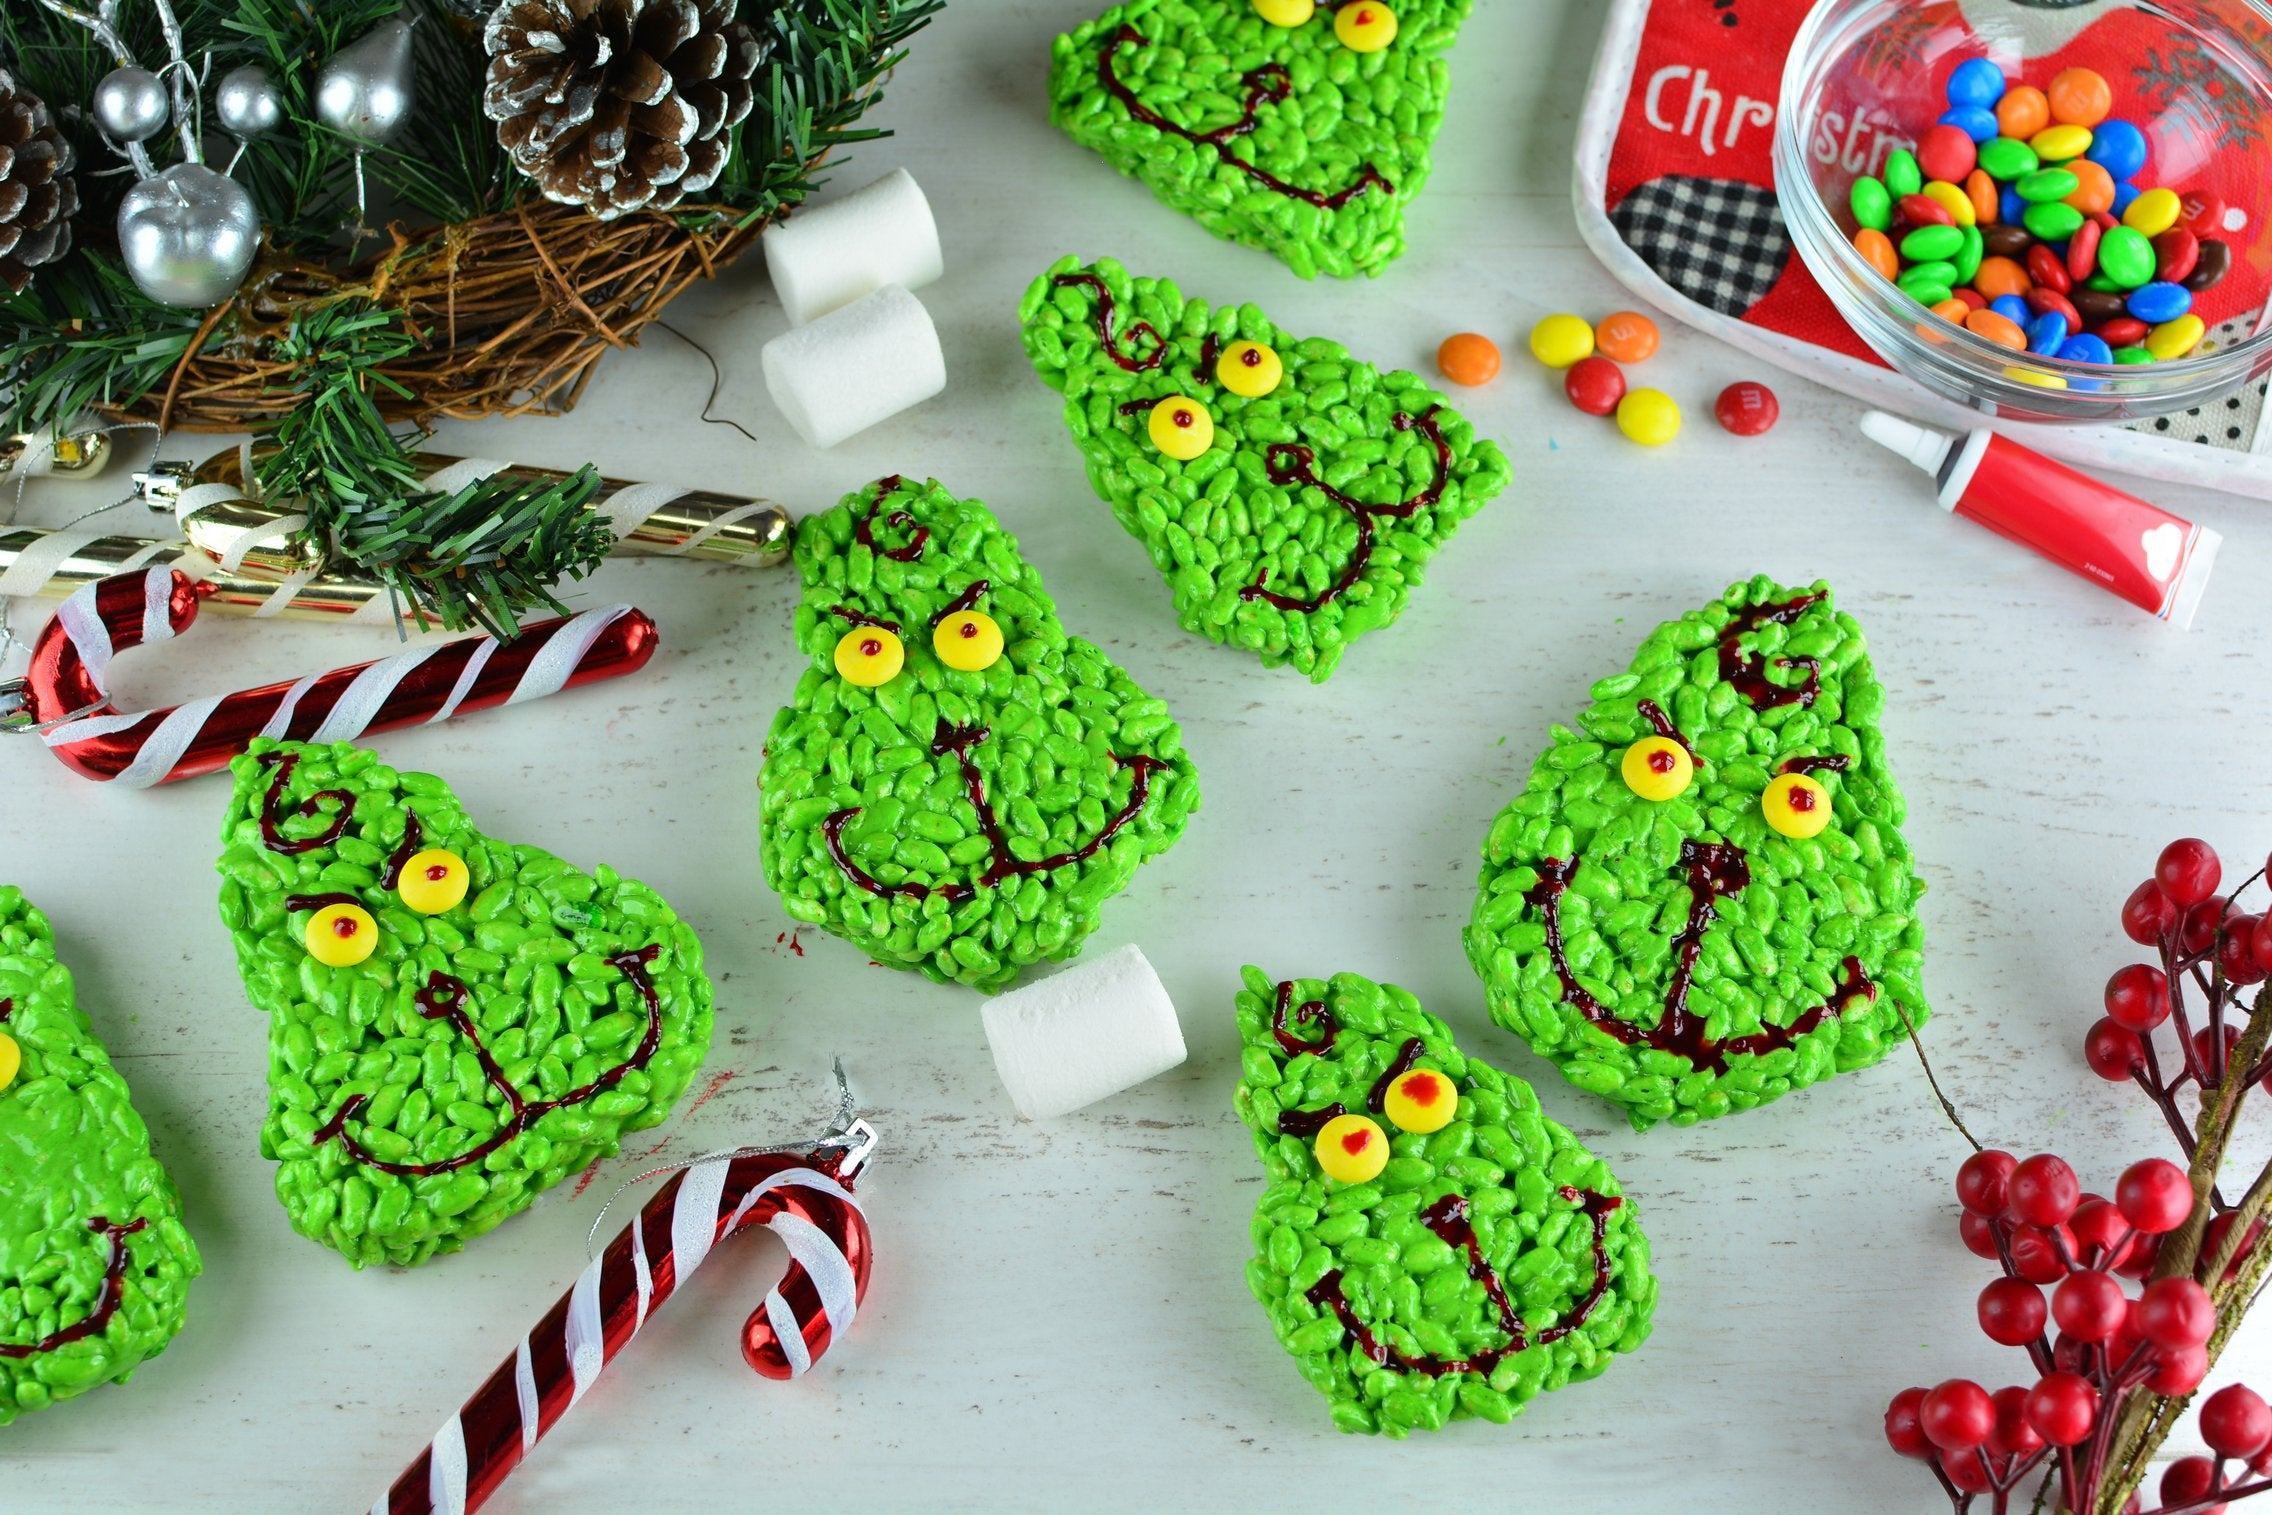 marshmallow-matcha-grinch-cookies-with-m-m-s-final